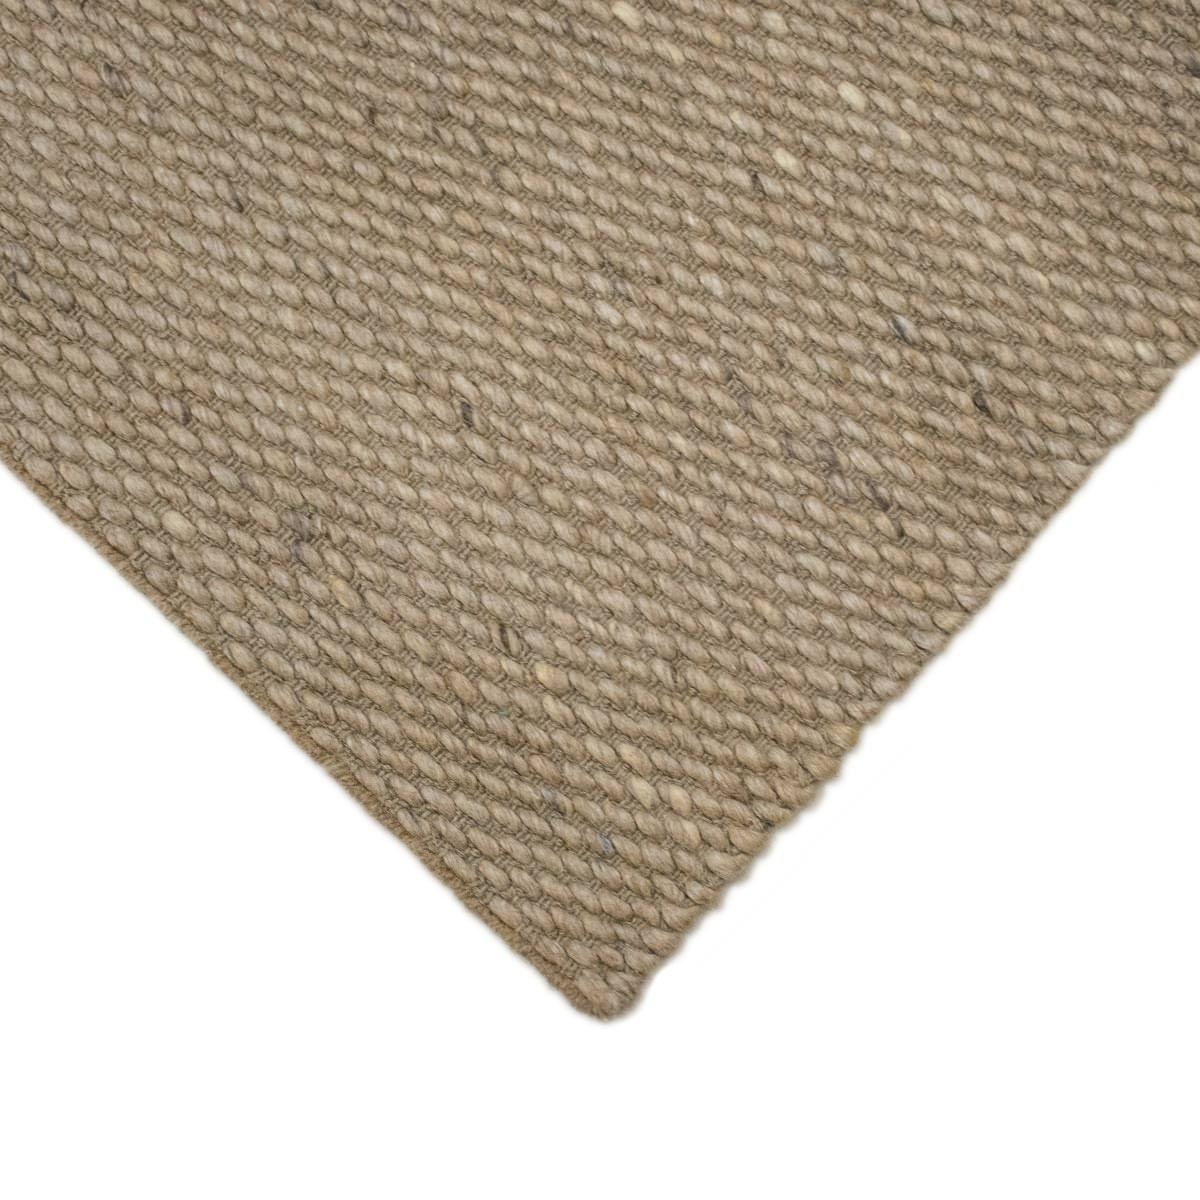 Arava Rug 01 Brown 7